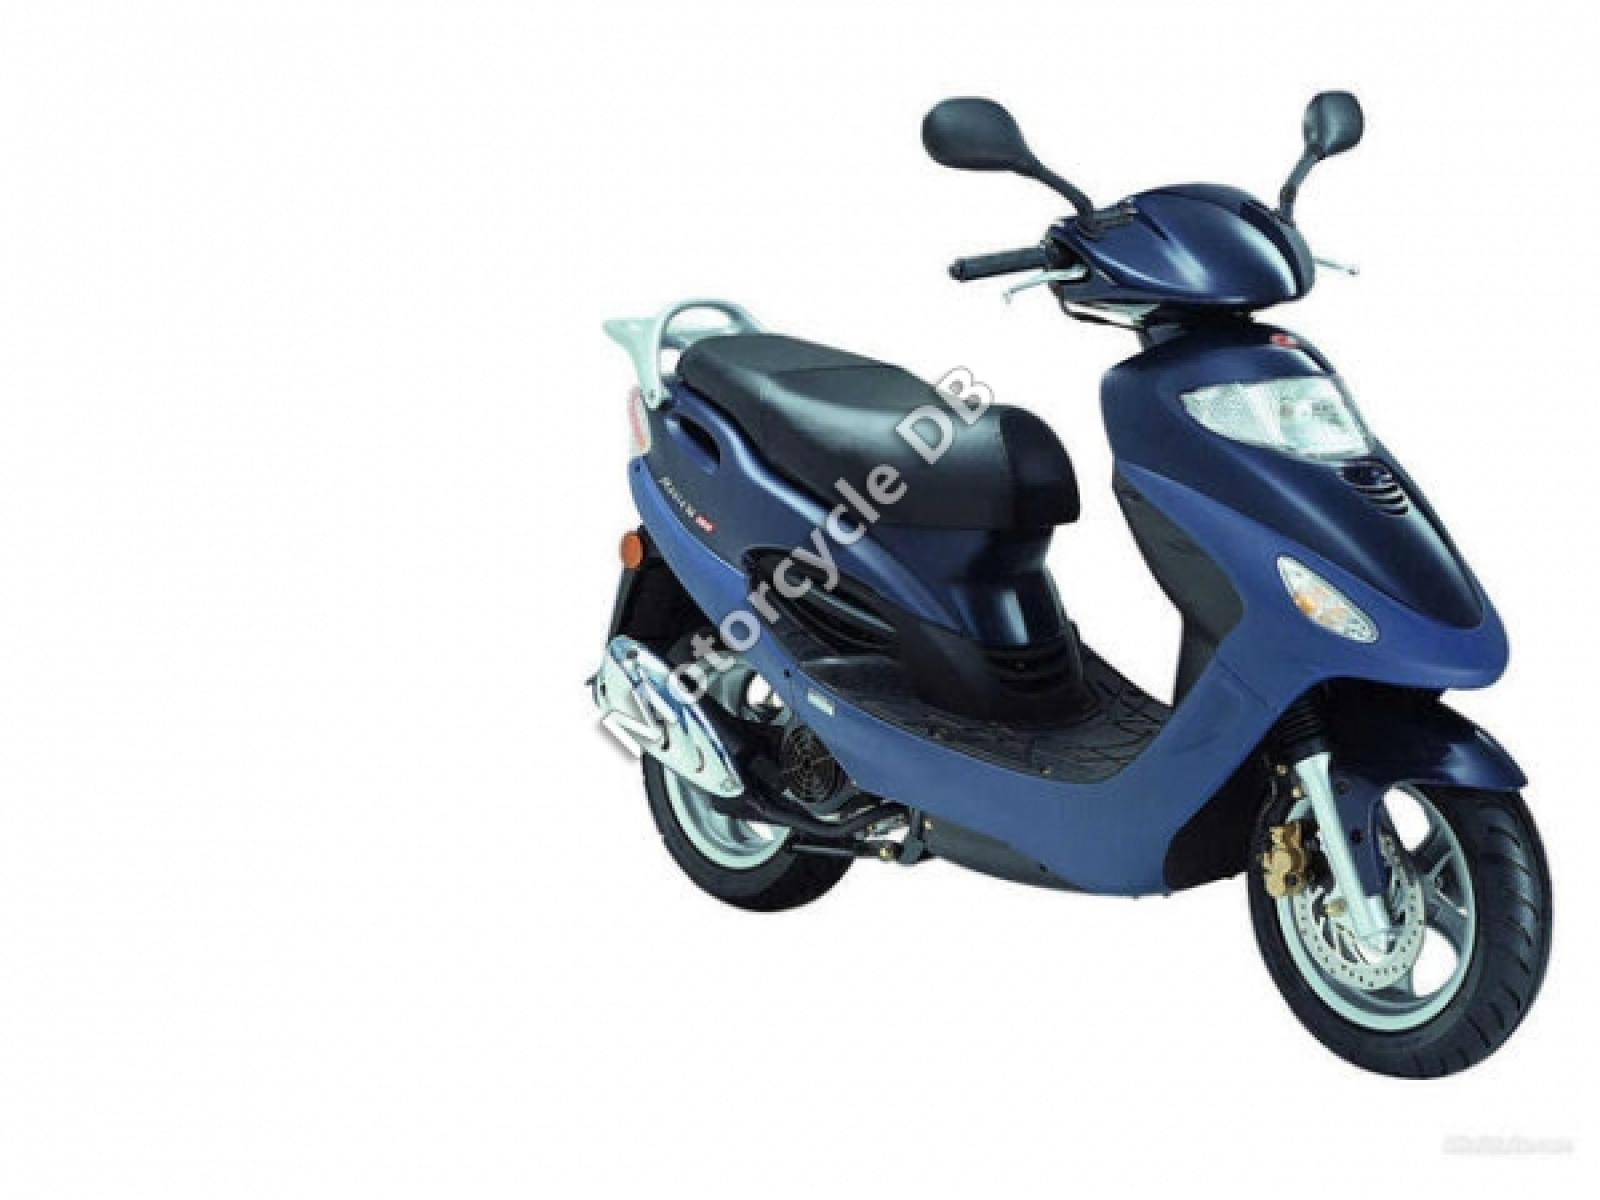 2004 Kymco Hipster 150 #12